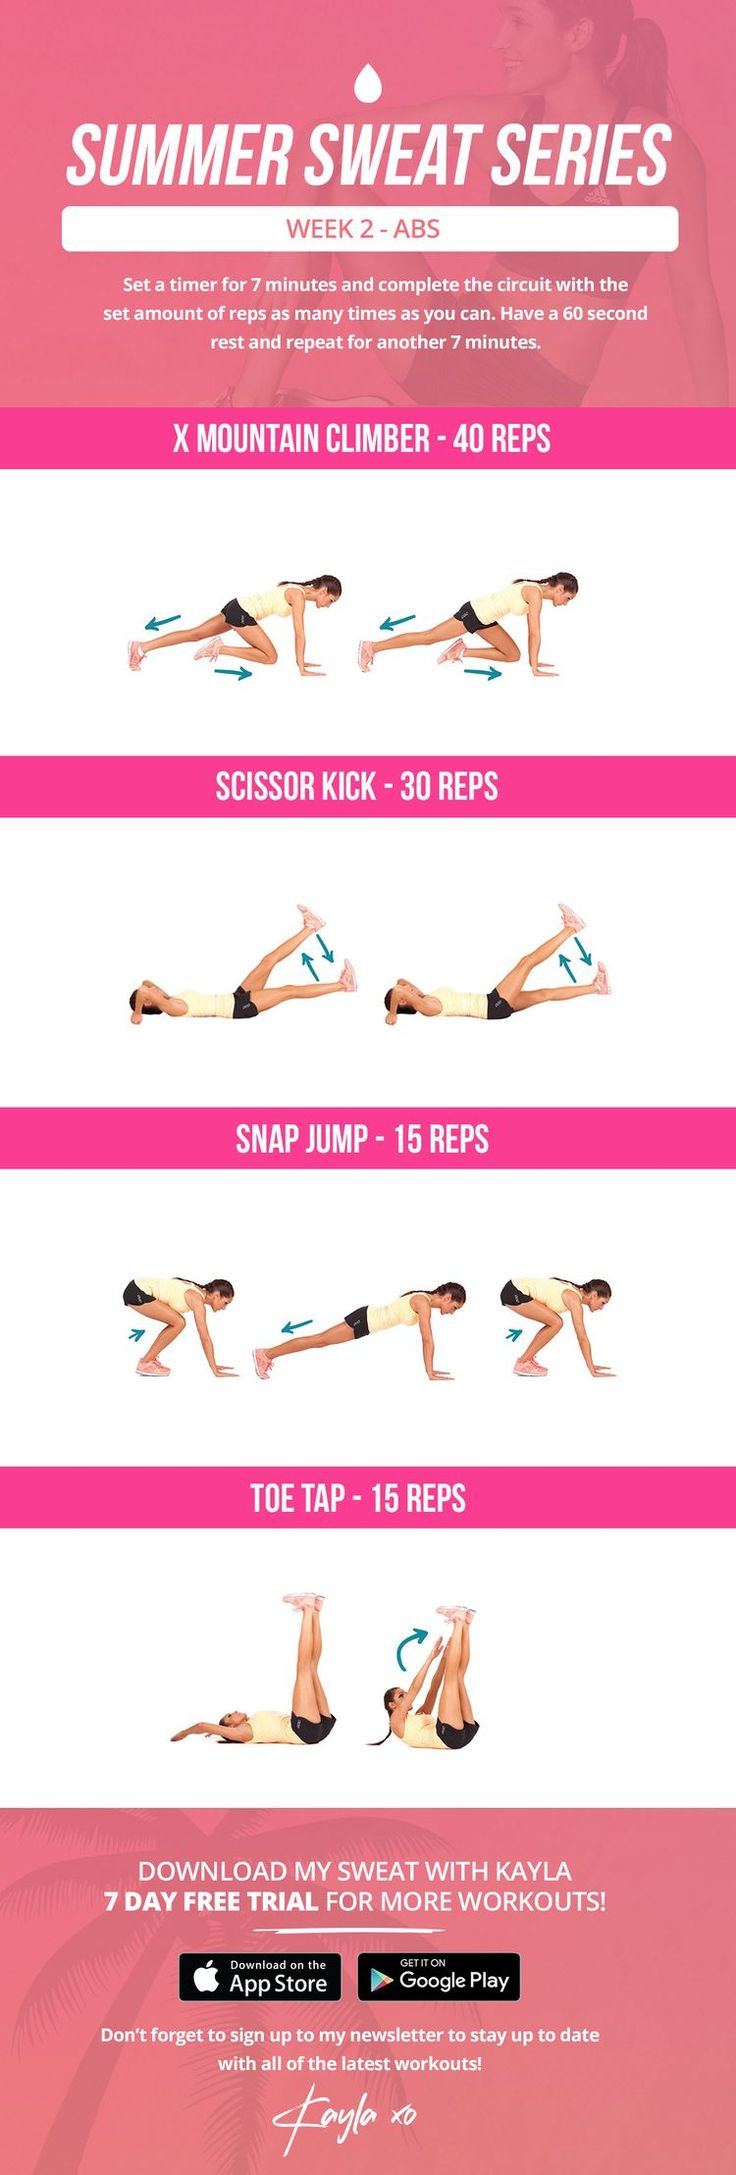 Ab HIIT workout 2x7mins - kayla itsines